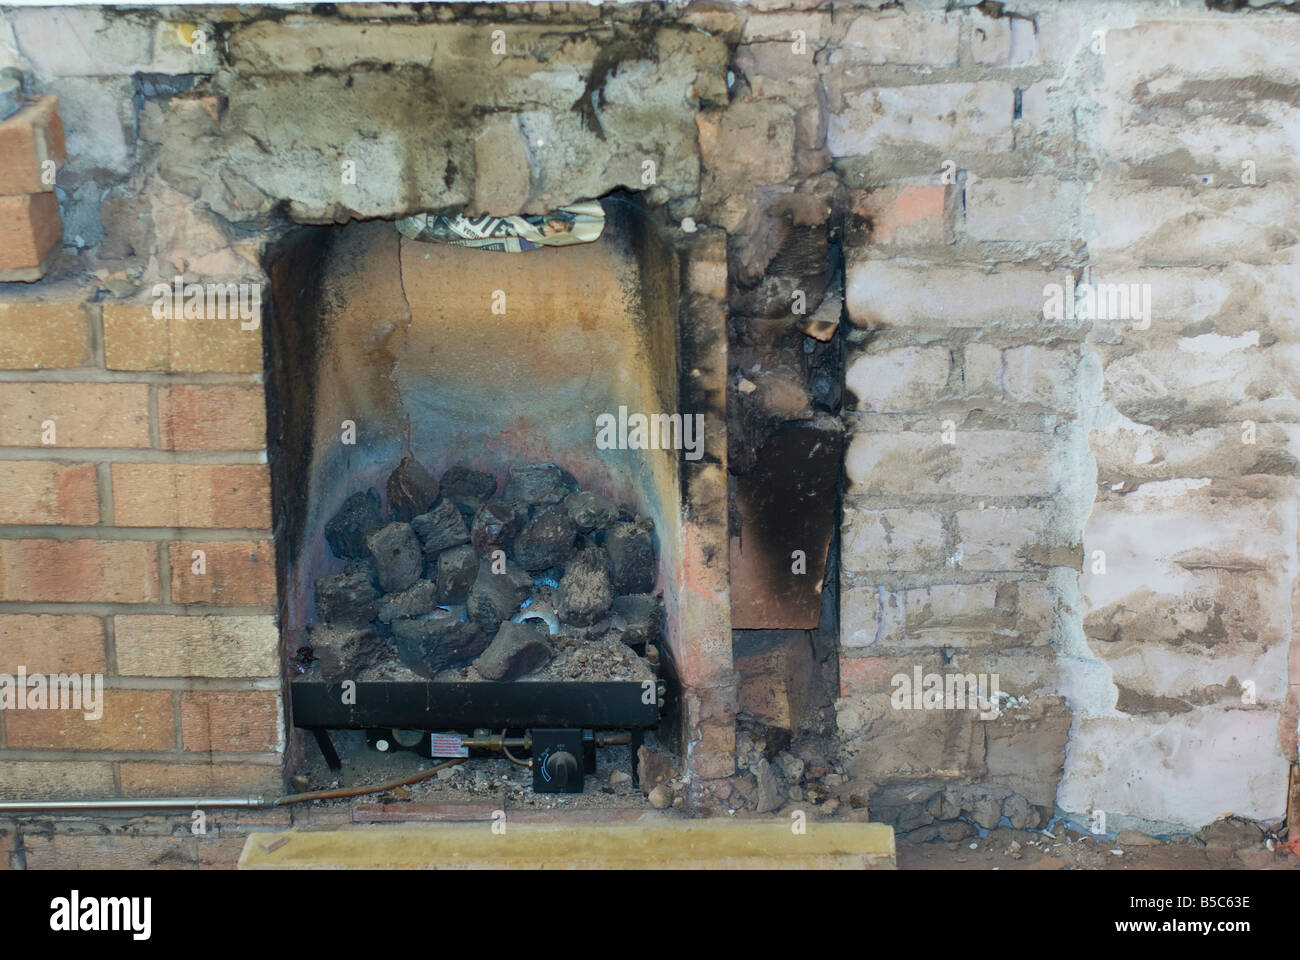 condemed Coal effect gas fire with soot and blocked